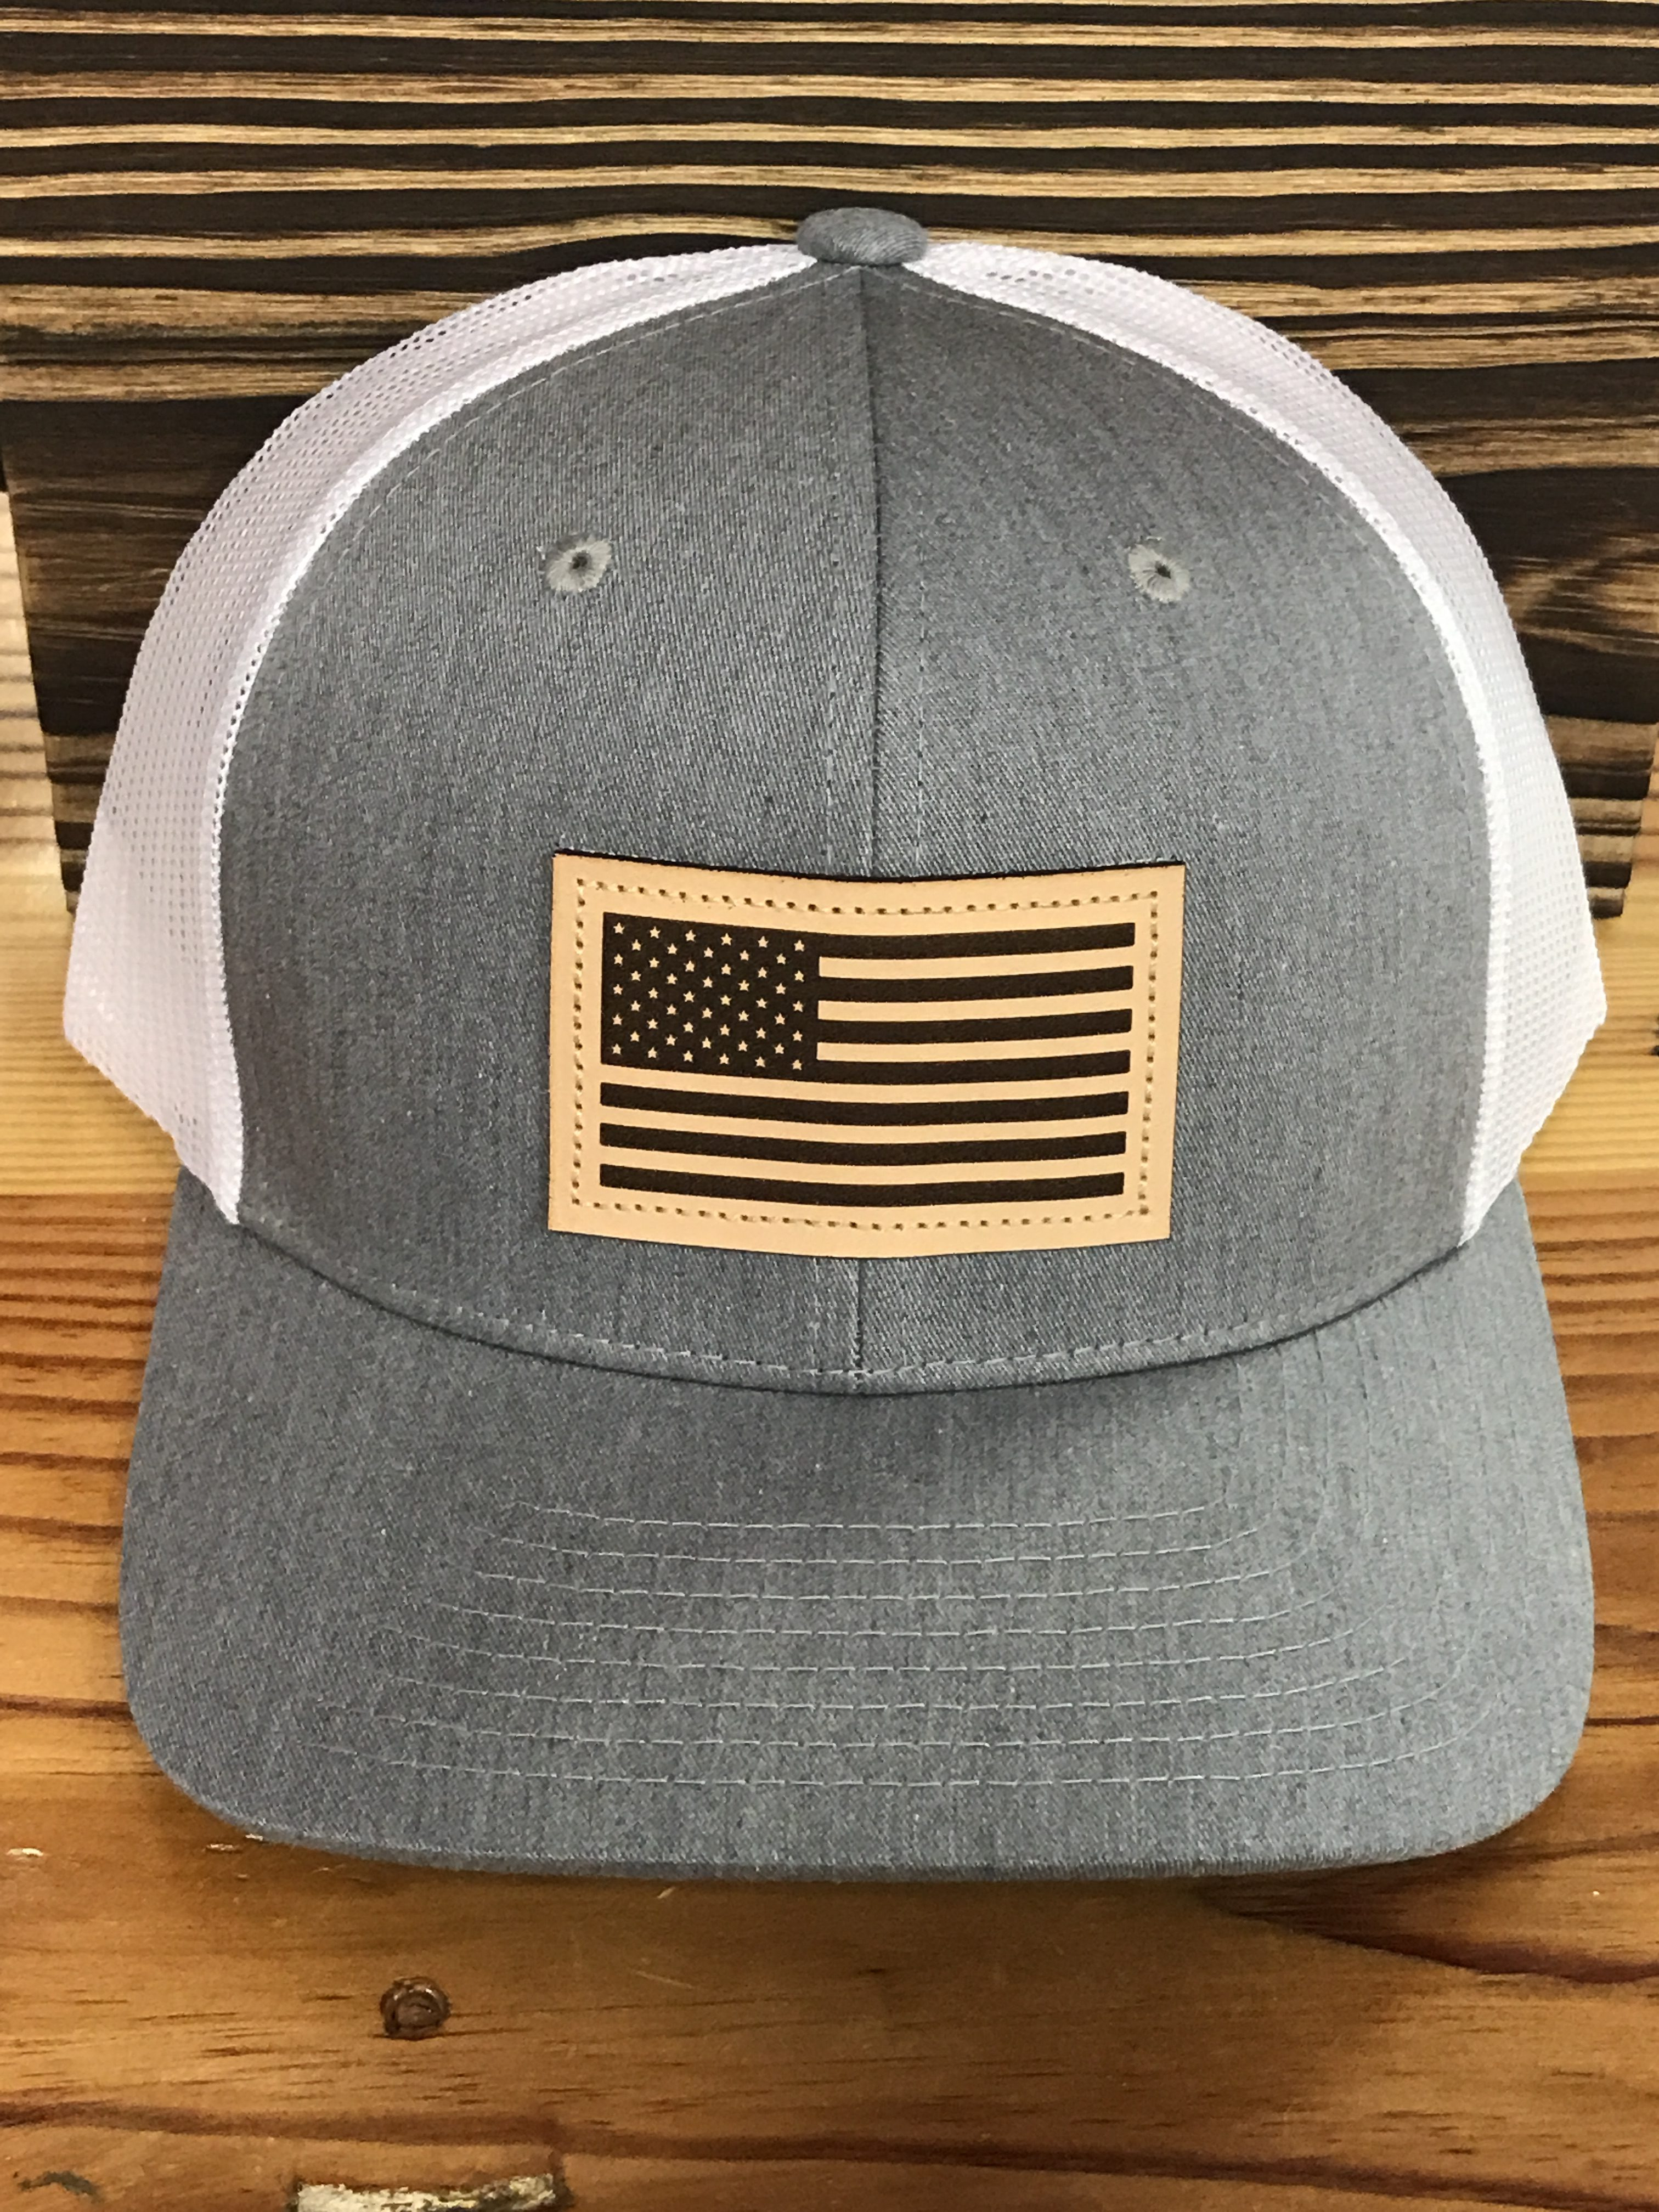 Captuer USA Flag Leather Patch Trucker Hat Heather Grey White Accessories ae7e4514ec6